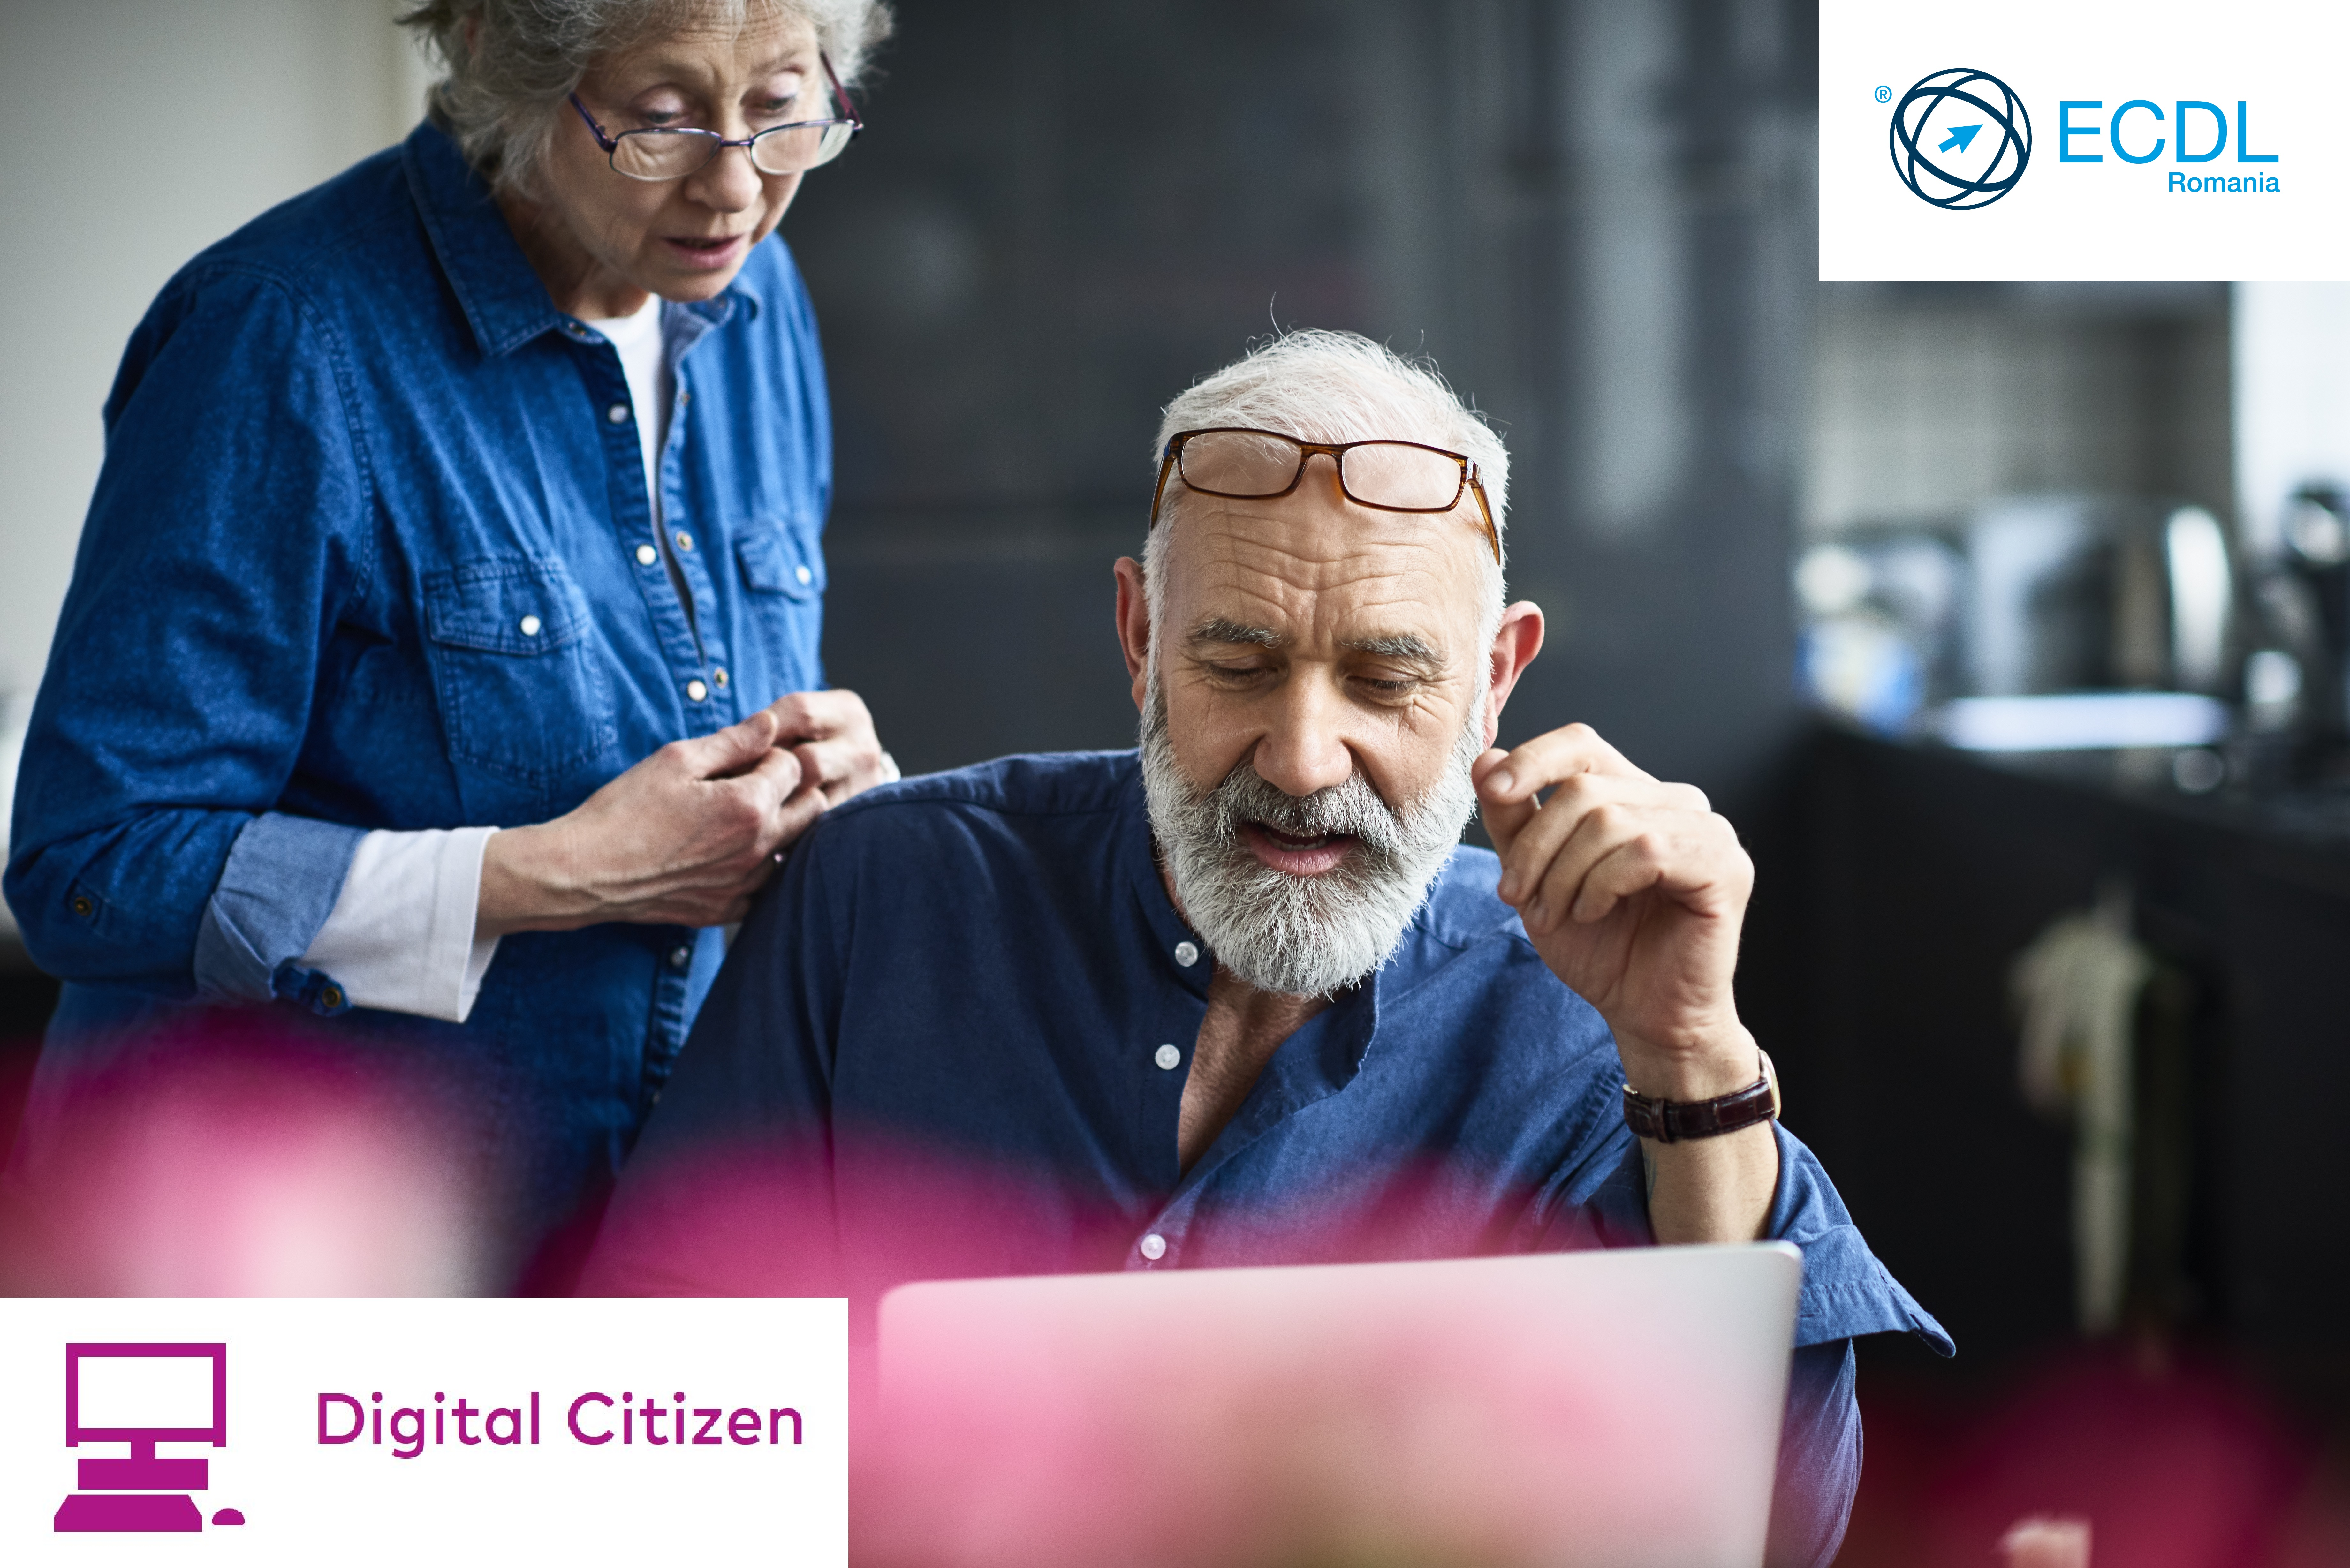 ECDL RO Digital Citizen.jpg